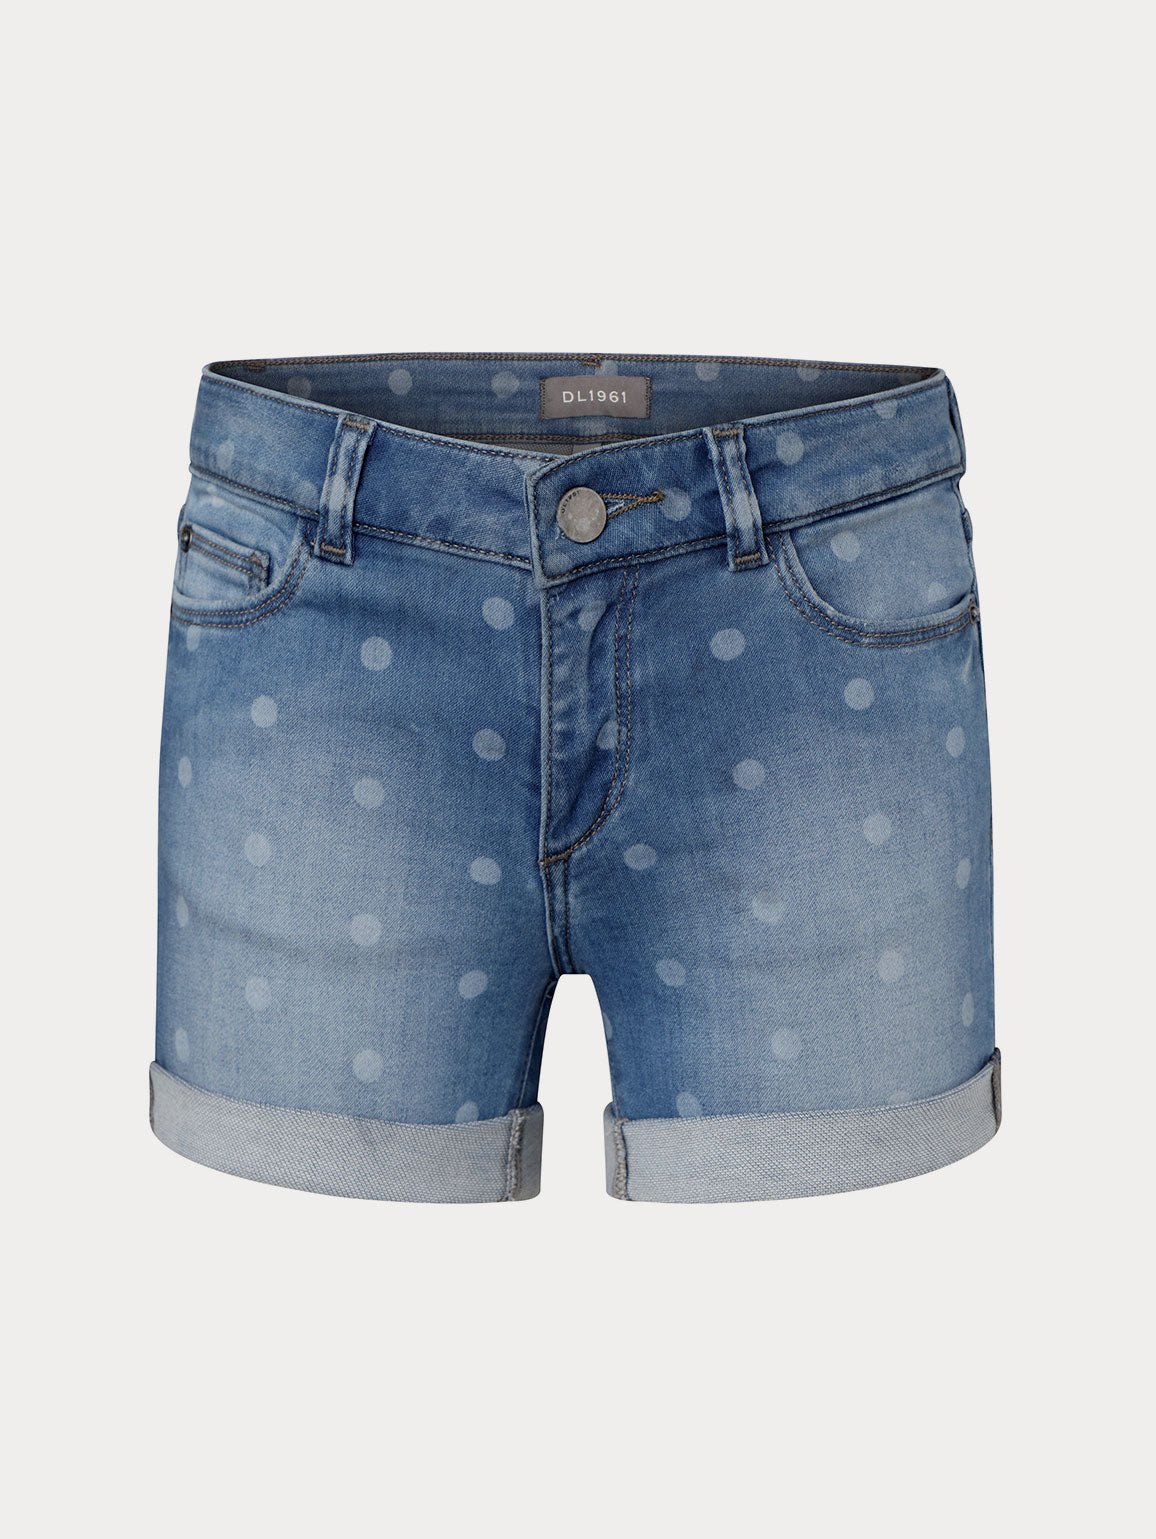 Piper Cuffed Short | Bluebird